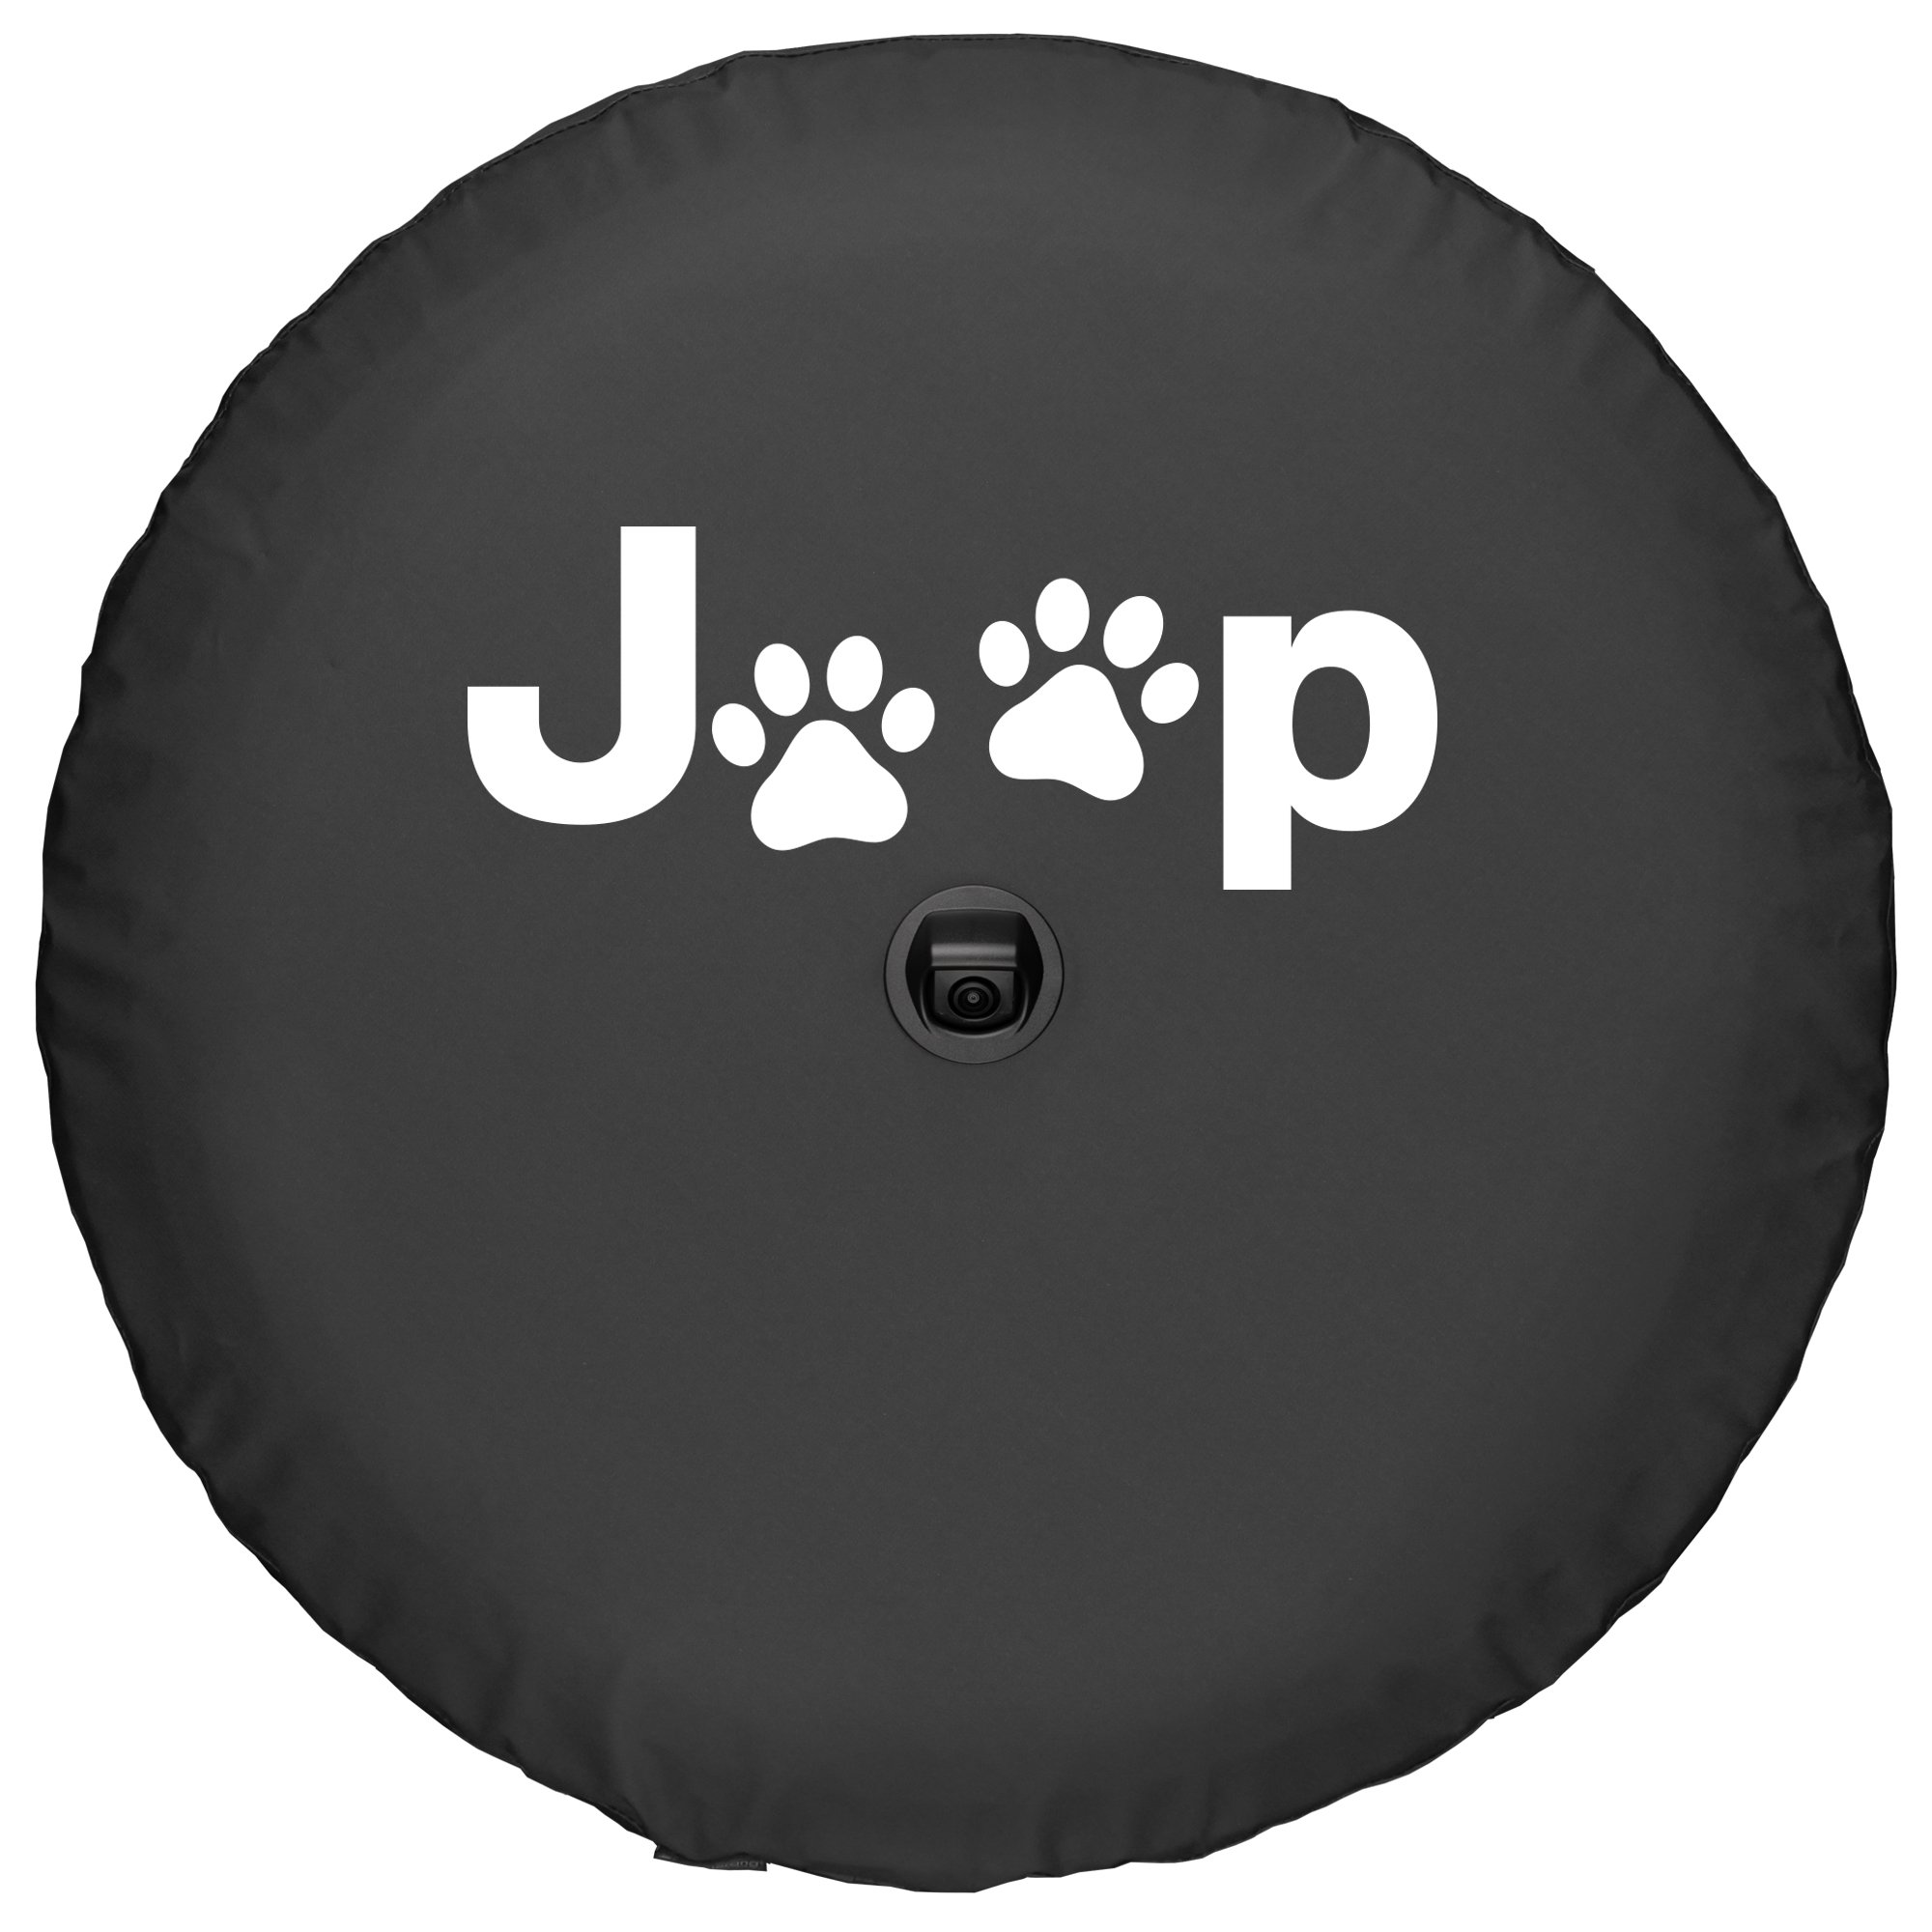 Boomerang 2018 Jeep Wrangler Rubicon JL & JLU - 33'' Soft Tire Cover - Jeep Paws by Boomerang (Image #3)